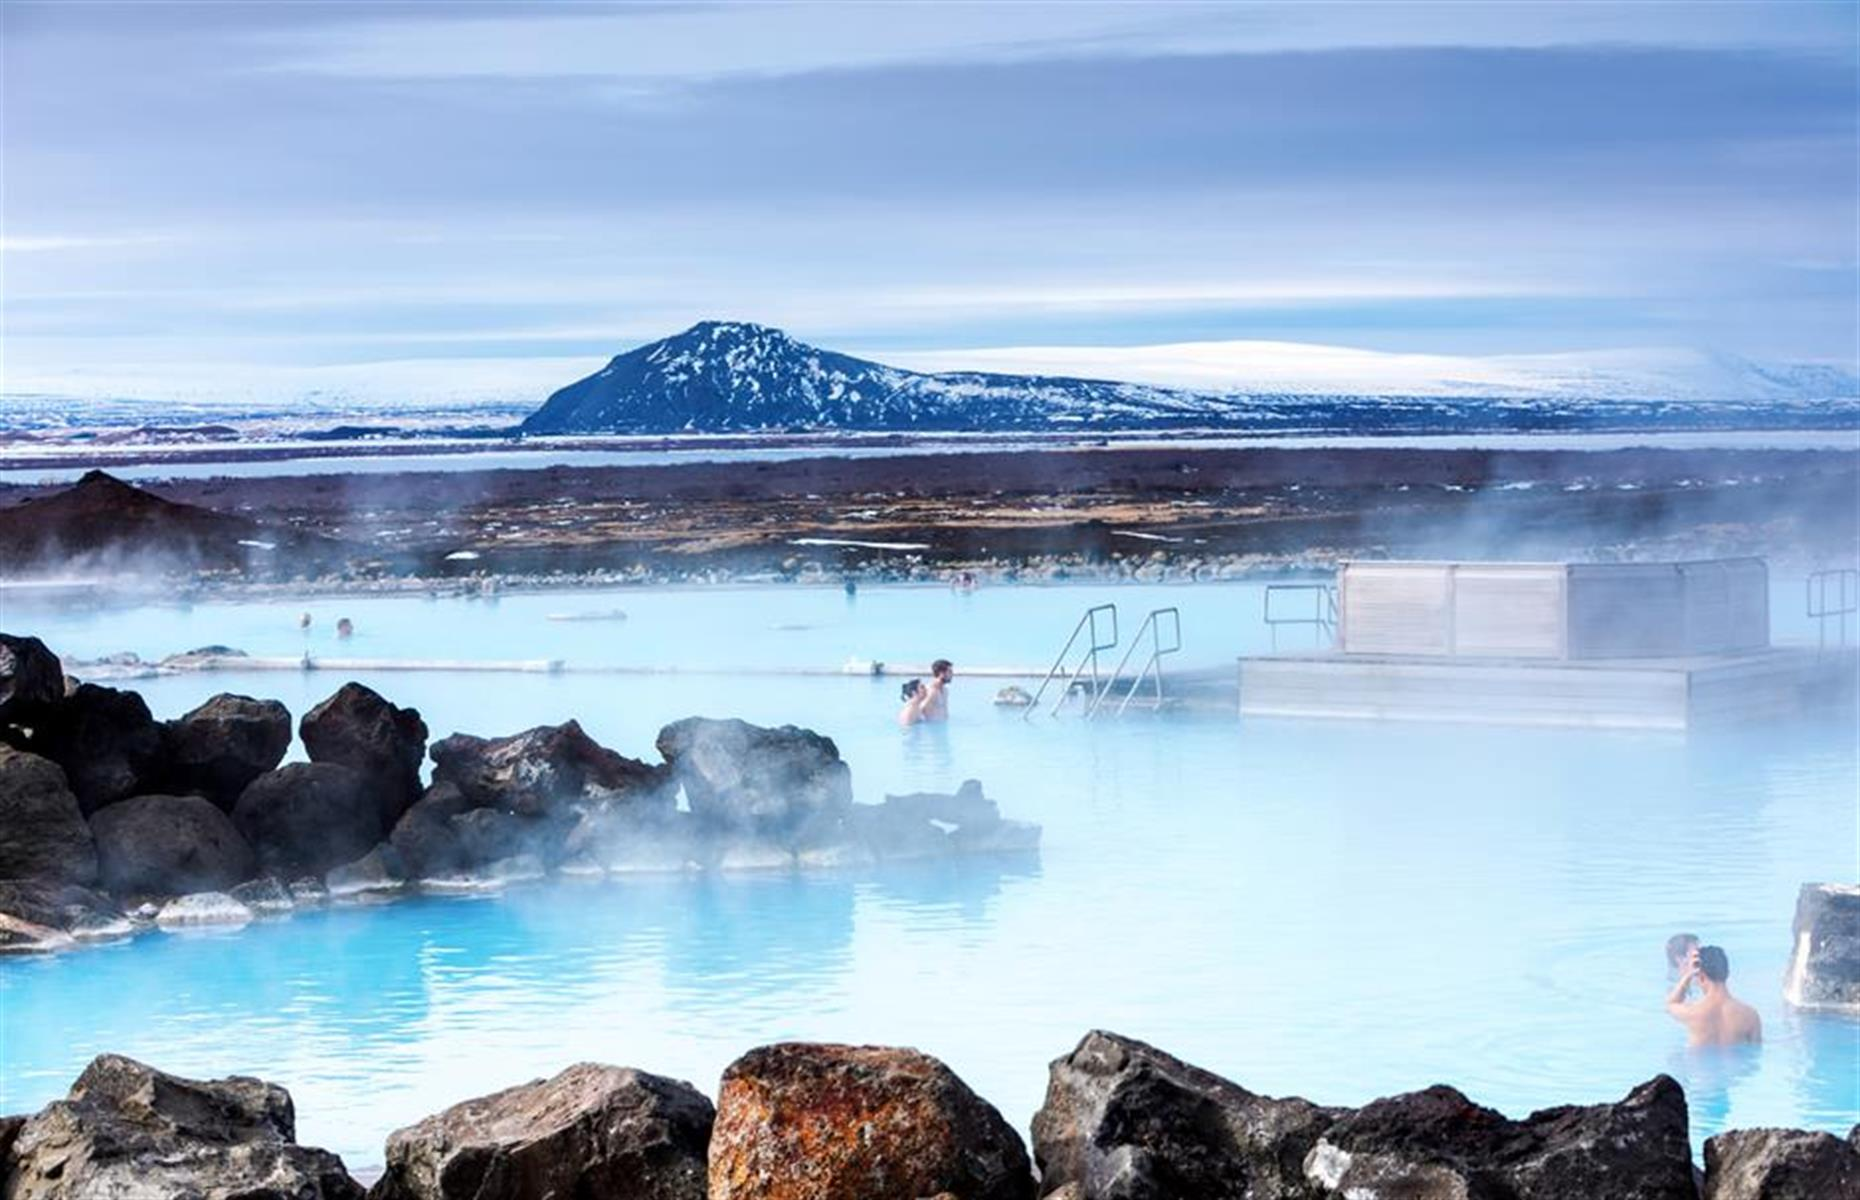 Slide 21 of 41: Instead, why not travel to Mývatn Nature Bath in the north of island. It may not offer all the glitz of the Blue Lagoon but you'll find similar milky-blue waters, with temperatures of 96.8–104°F (36–40°C), at around half the price. As well as the pools themselves, there are two geothermally-heated steam baths, plus changing rooms with organic body products. Once you've had your watery fun, head to the café for goulash and the famous geyser bread which is baked underground. Find more underrated spots in Iceland here.